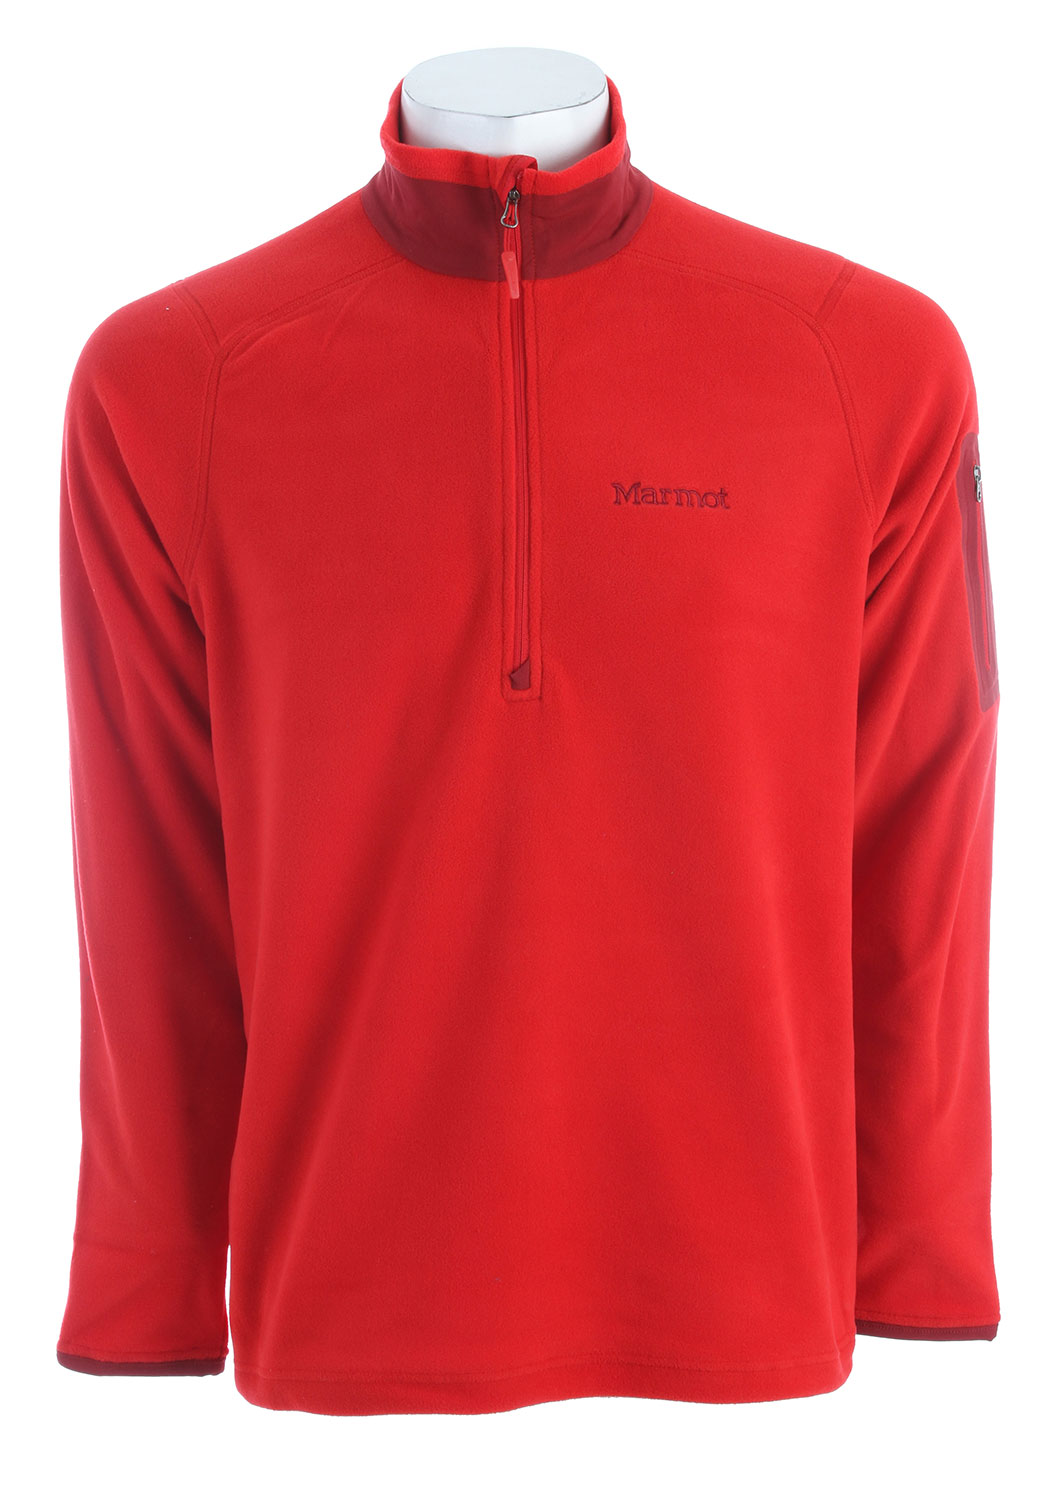 "This very lightweight and comfortably warm Marmot Reactor 1/2 Zip Fleece pullover is great for wearing out to jog, walk, or causally play during the beautiful fall seasons. With a regular fit, made mostly with polyester micro fleece and Polartec Classic 100, this pullover will most certainly warm your body. The sleeve pocket zips close, and the front center pocket has a 12 inch zip closure. Designed to keep the draftiness out, the 1/2 Zip Fleece layers over any type of clothing without feeling bulky.Key Features of the Marmot Reactor 1/2 Zip Fleece:  Weight 0lbs 9.3oz (263.7g   Materials Polartec Classic 100 100% Polyester Micro Fleece 4.6 oz/yd  Center Back Length 27.75in  Fit Regular Fit  Polartec Classic 100 Micro  Flat Lock Construction  12"" Center Front Zip  Bonded Zippered Sleeve Pocket - $62.95"